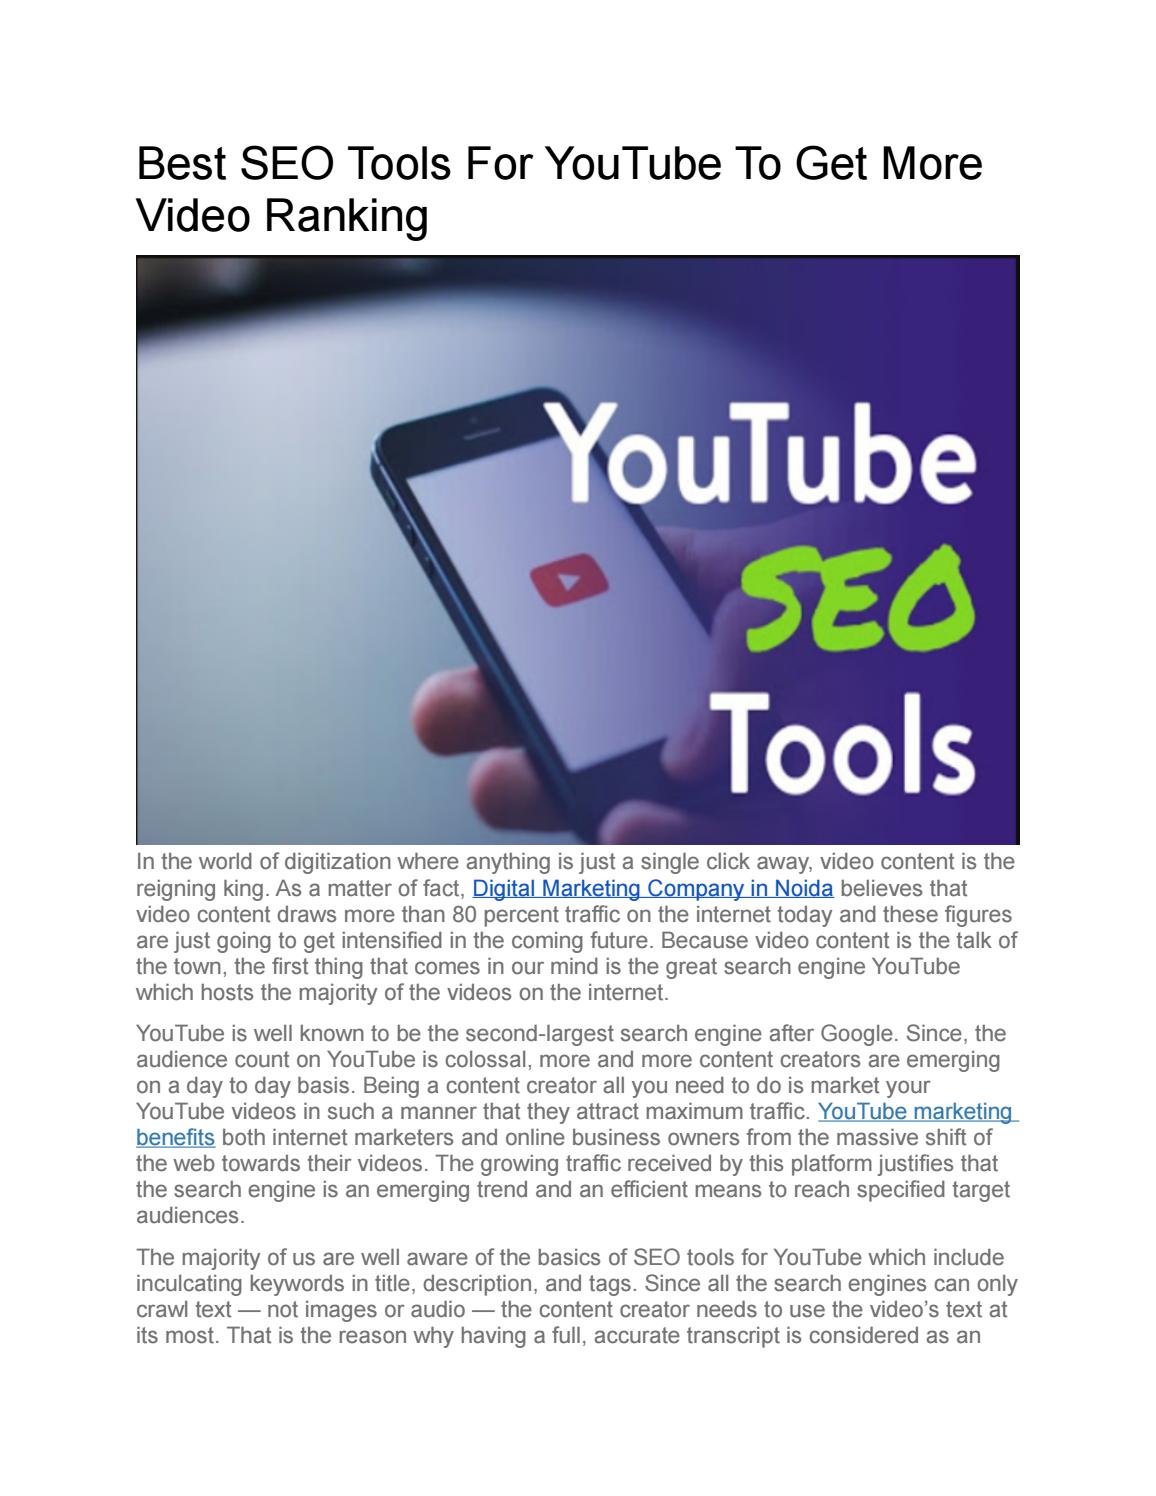 Best Seo Tools For Youtube To Get More Video Ranking By Sahil Technians Issuu